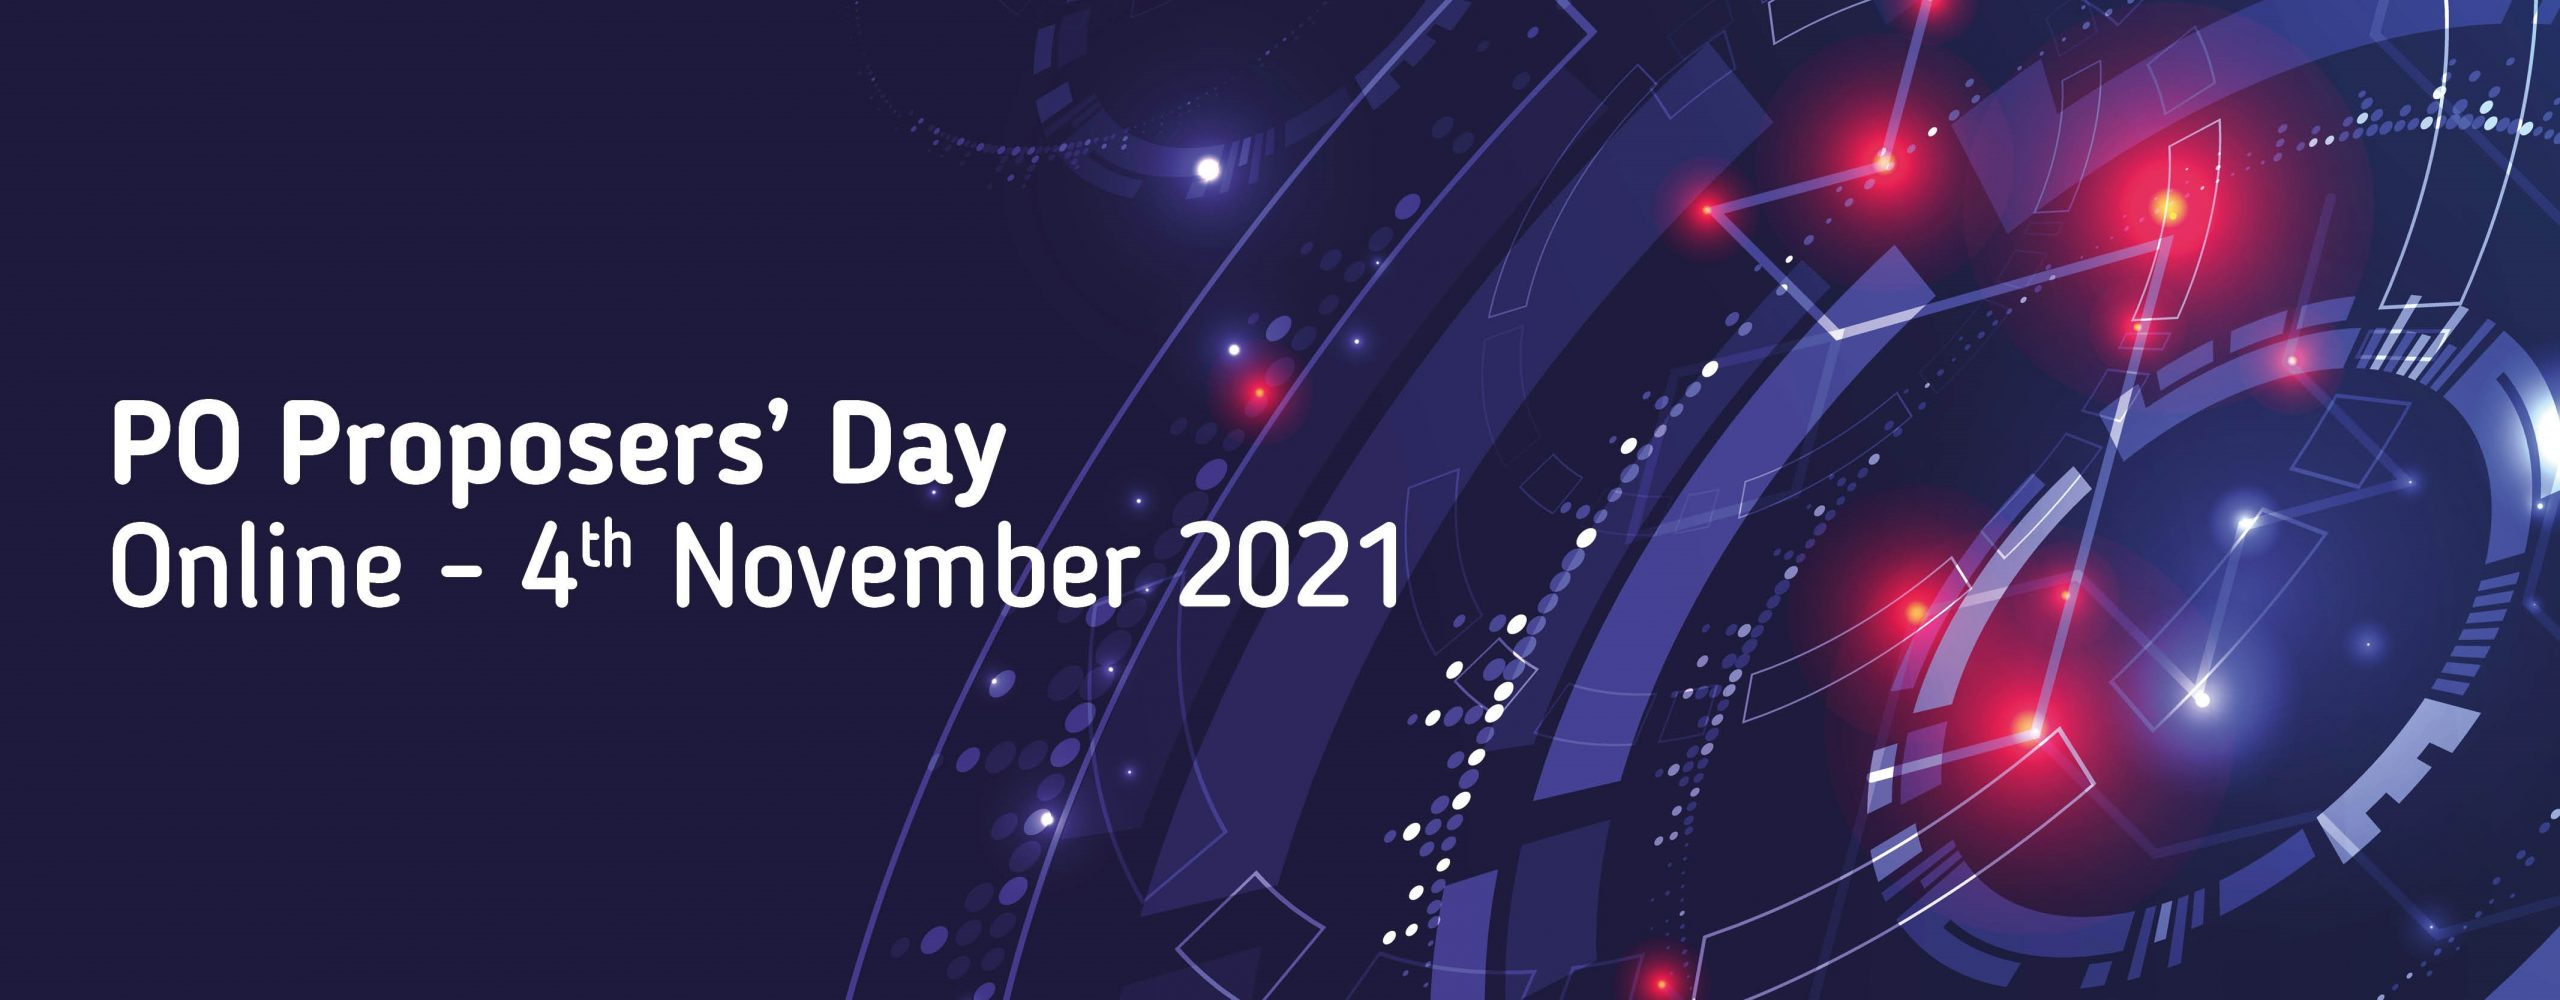 PO Proposers Day 4th November Graphic